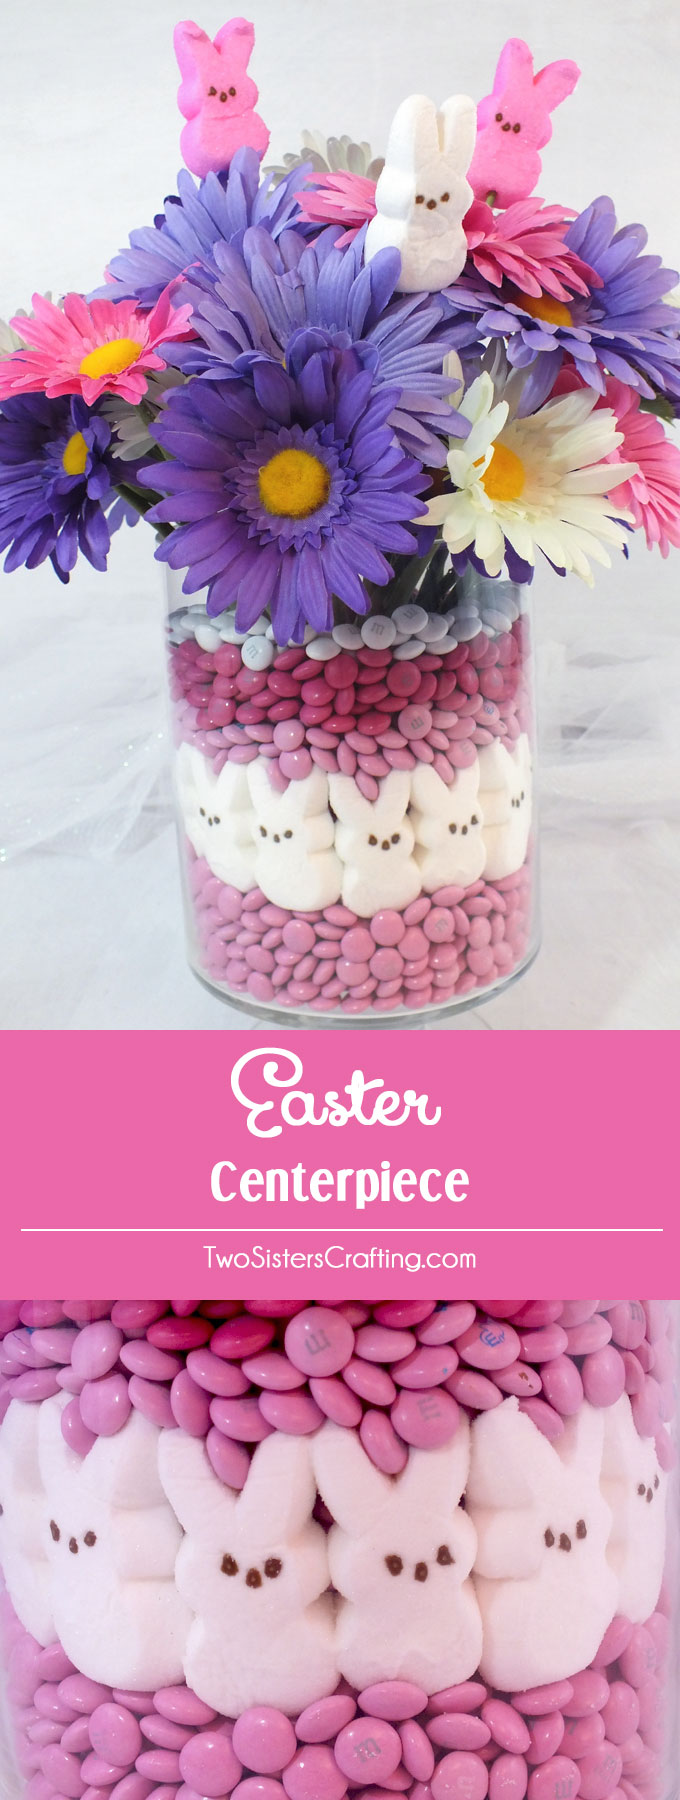 Easter centerpiece two sisters